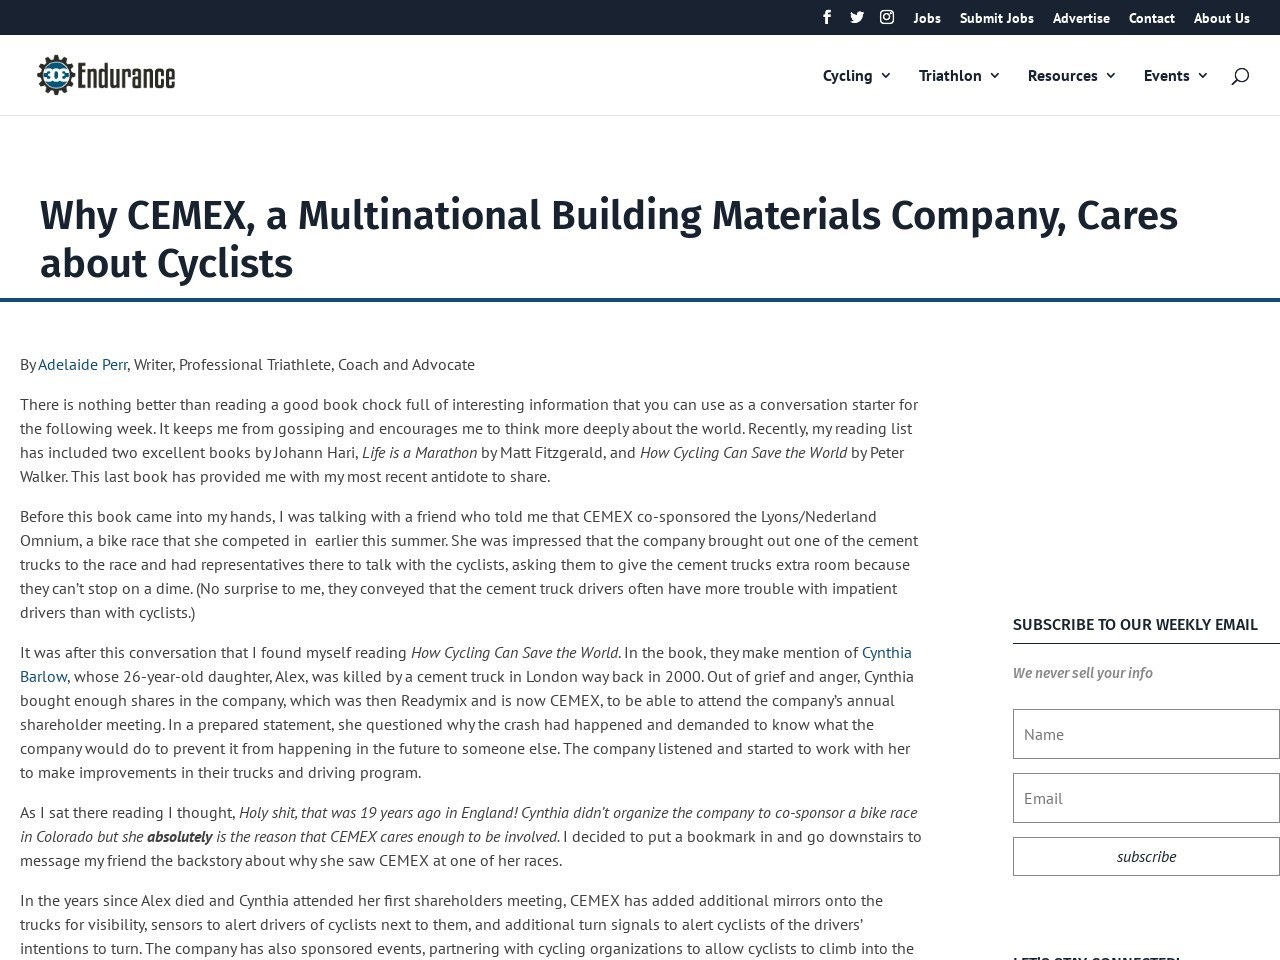 Why CEMEX, a Multinational Building Materials Company, Cares about Cyclists